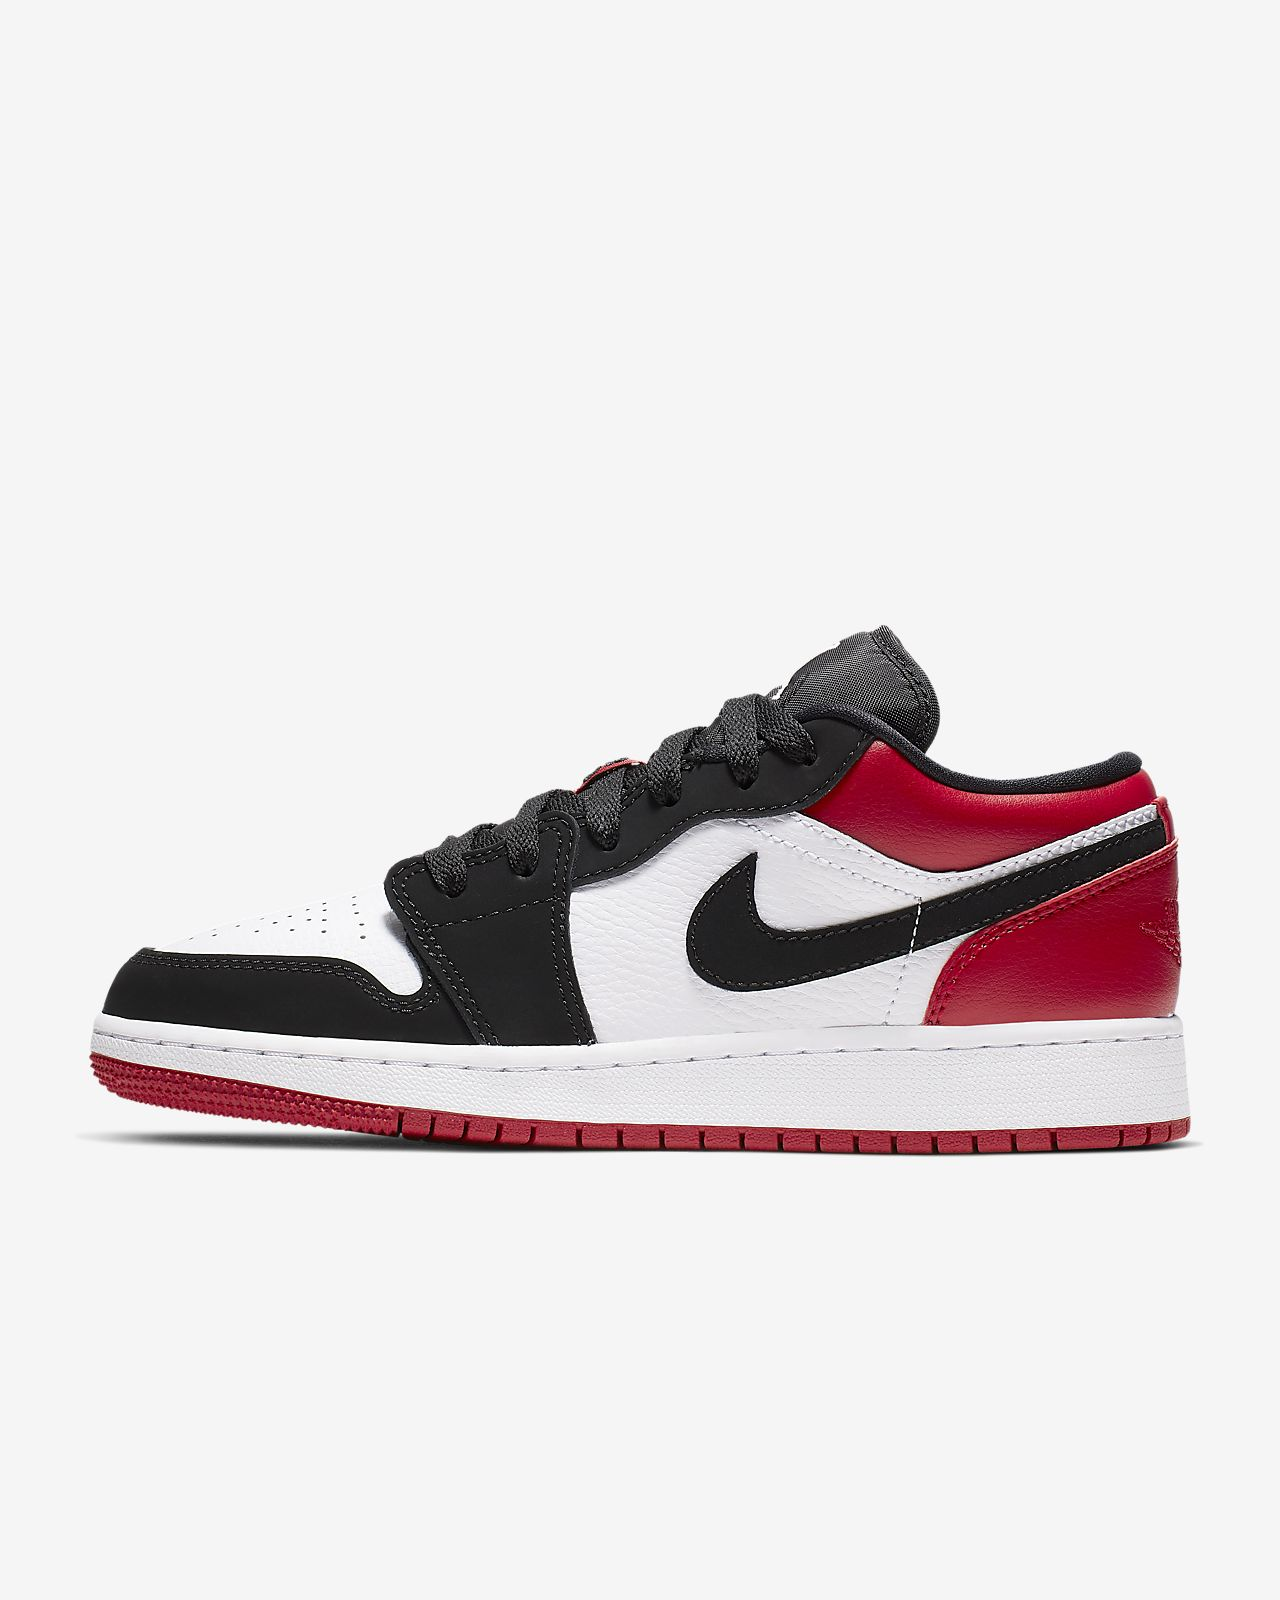 Air Jordan 1 Low Older Kids' Shoe